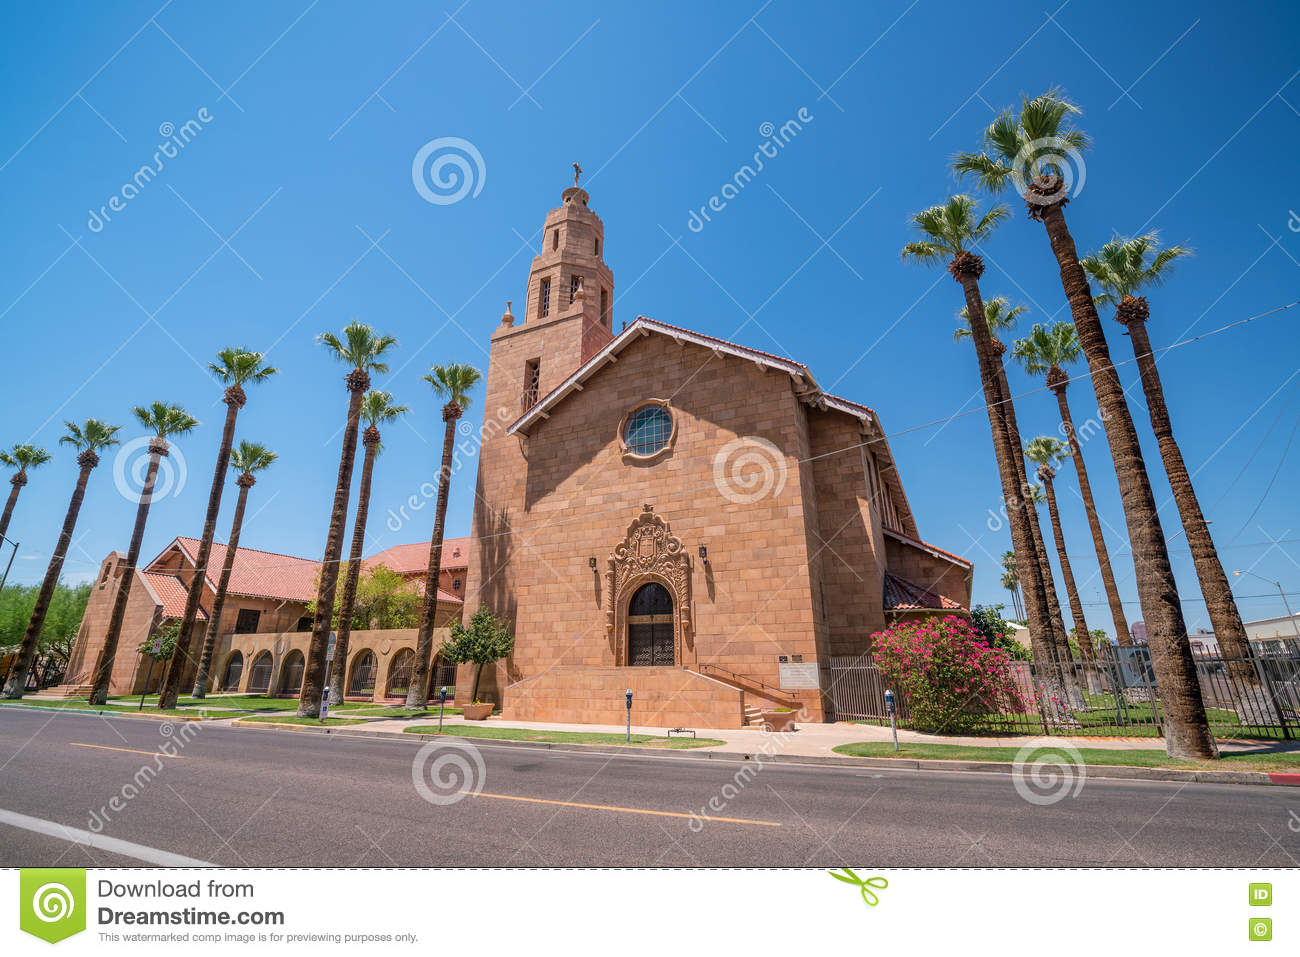 Old Church in downtown Phoenix Arizona